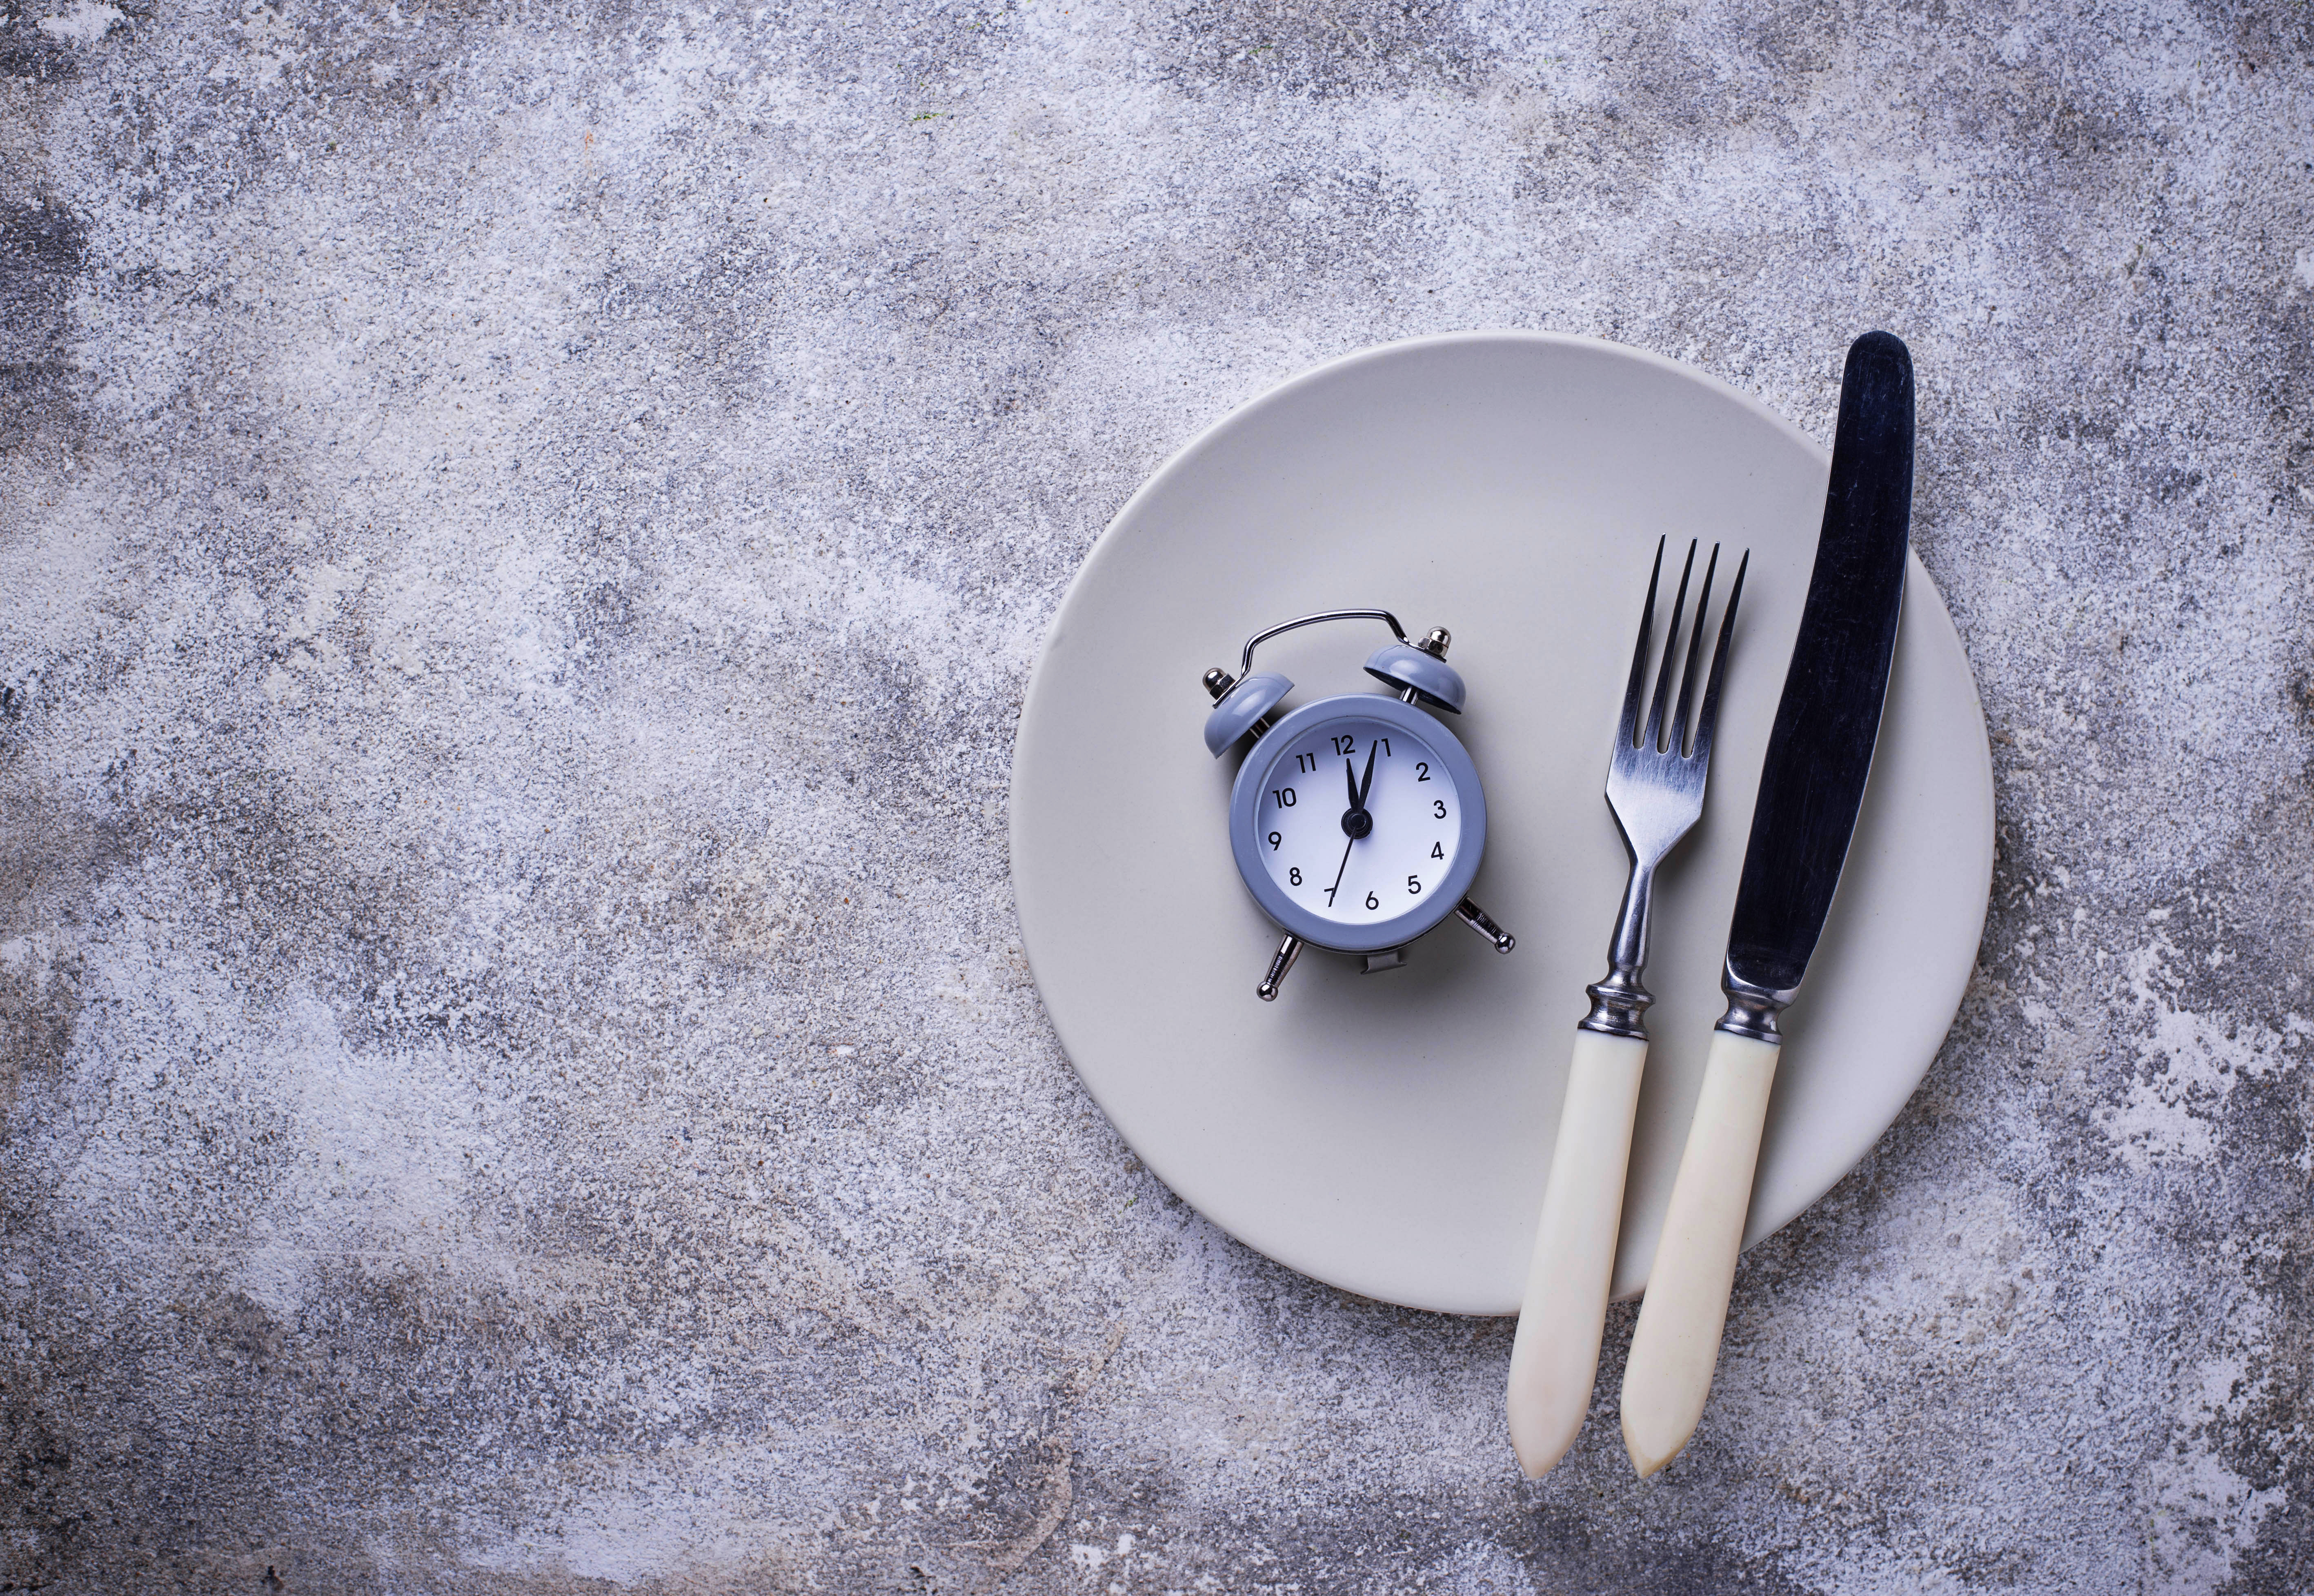 is fasting healthy?a picture of a plate with cutlery and a clock. Representing the idea of fasting and not consuming food during a certain time